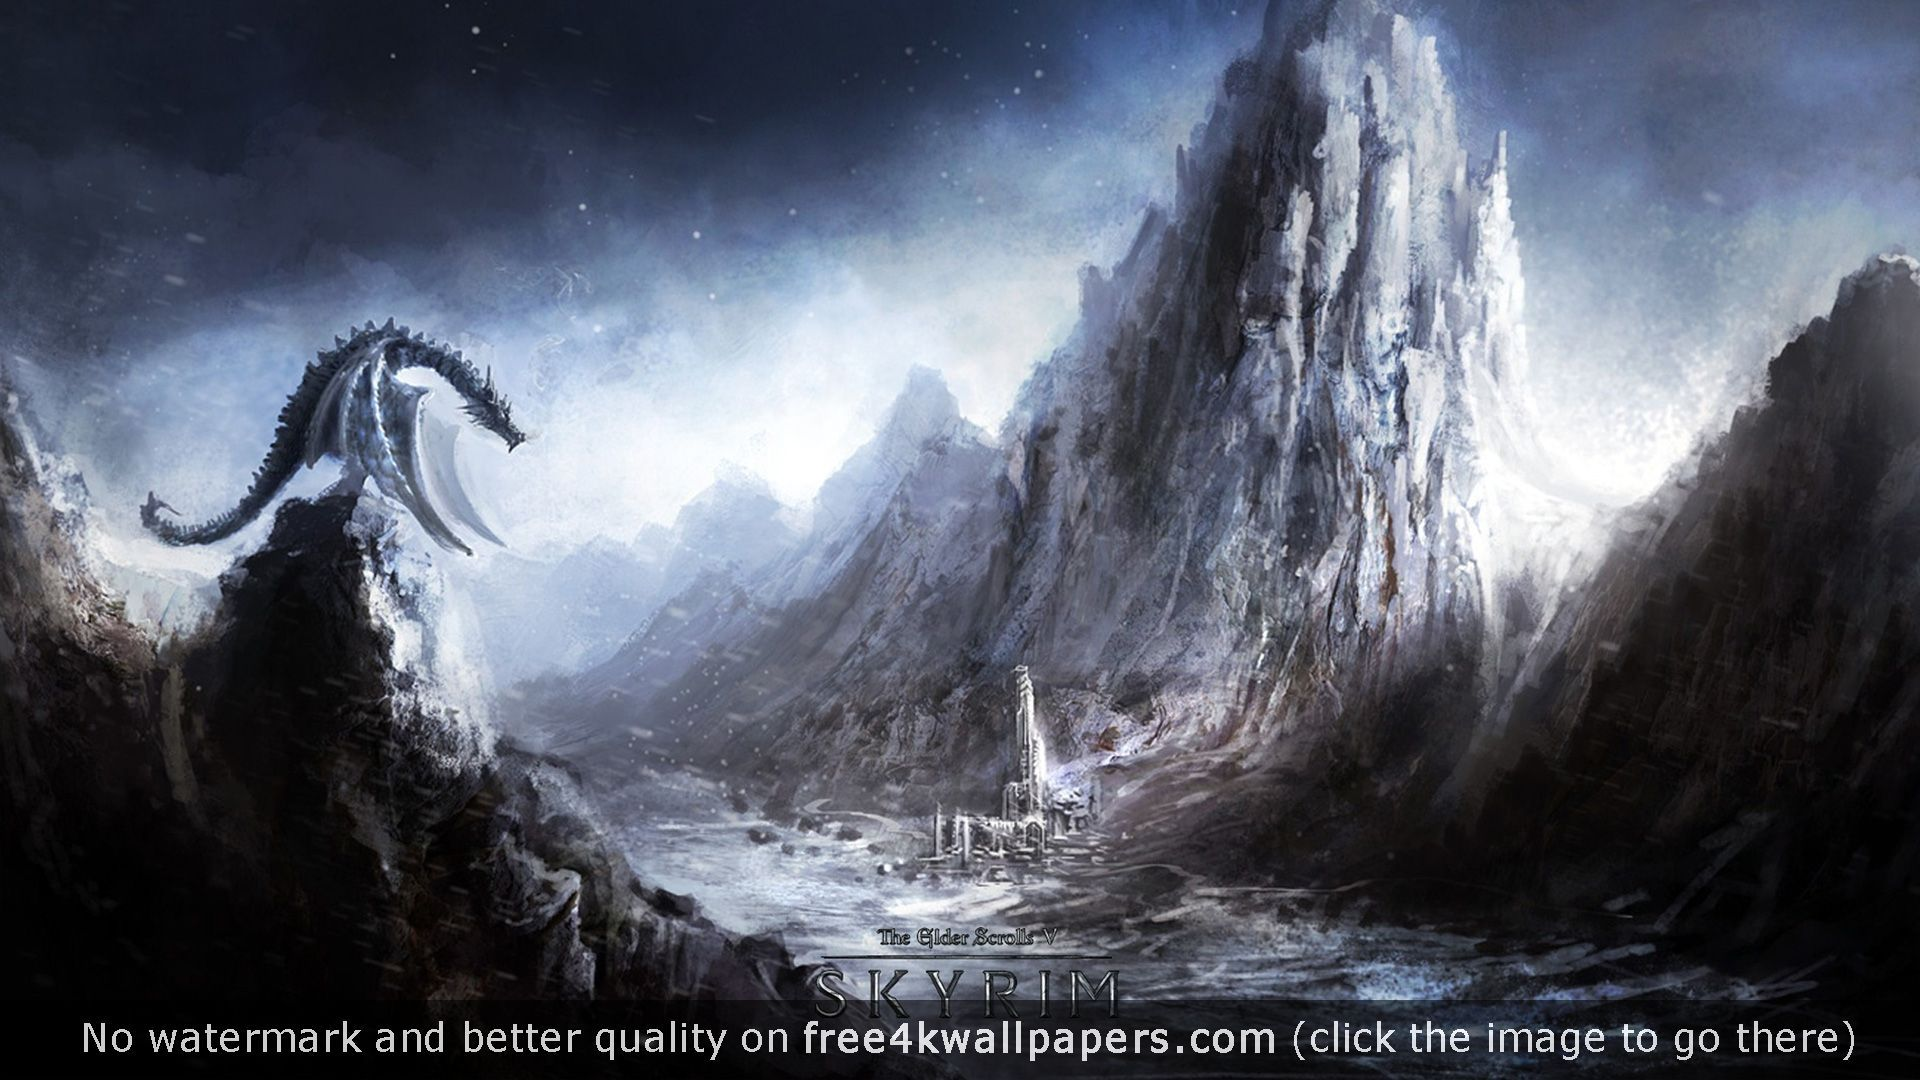 Skyrim Dragonborn 4K or HD wallpaper for your PC Mac or Mobile device 1920x1080